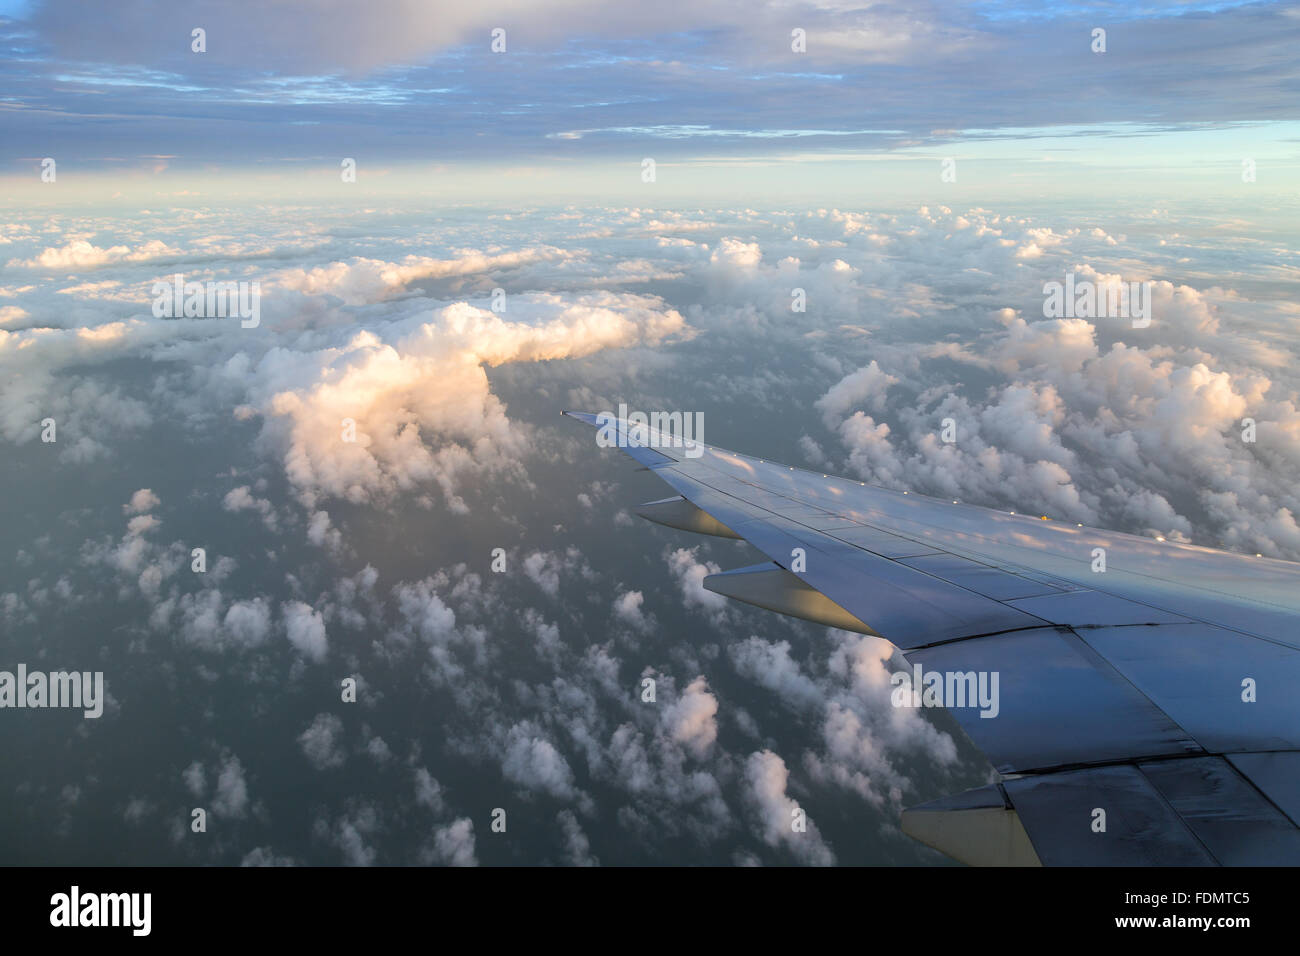 View of cloudy sky and airplane wing in the morning. - Stock Image